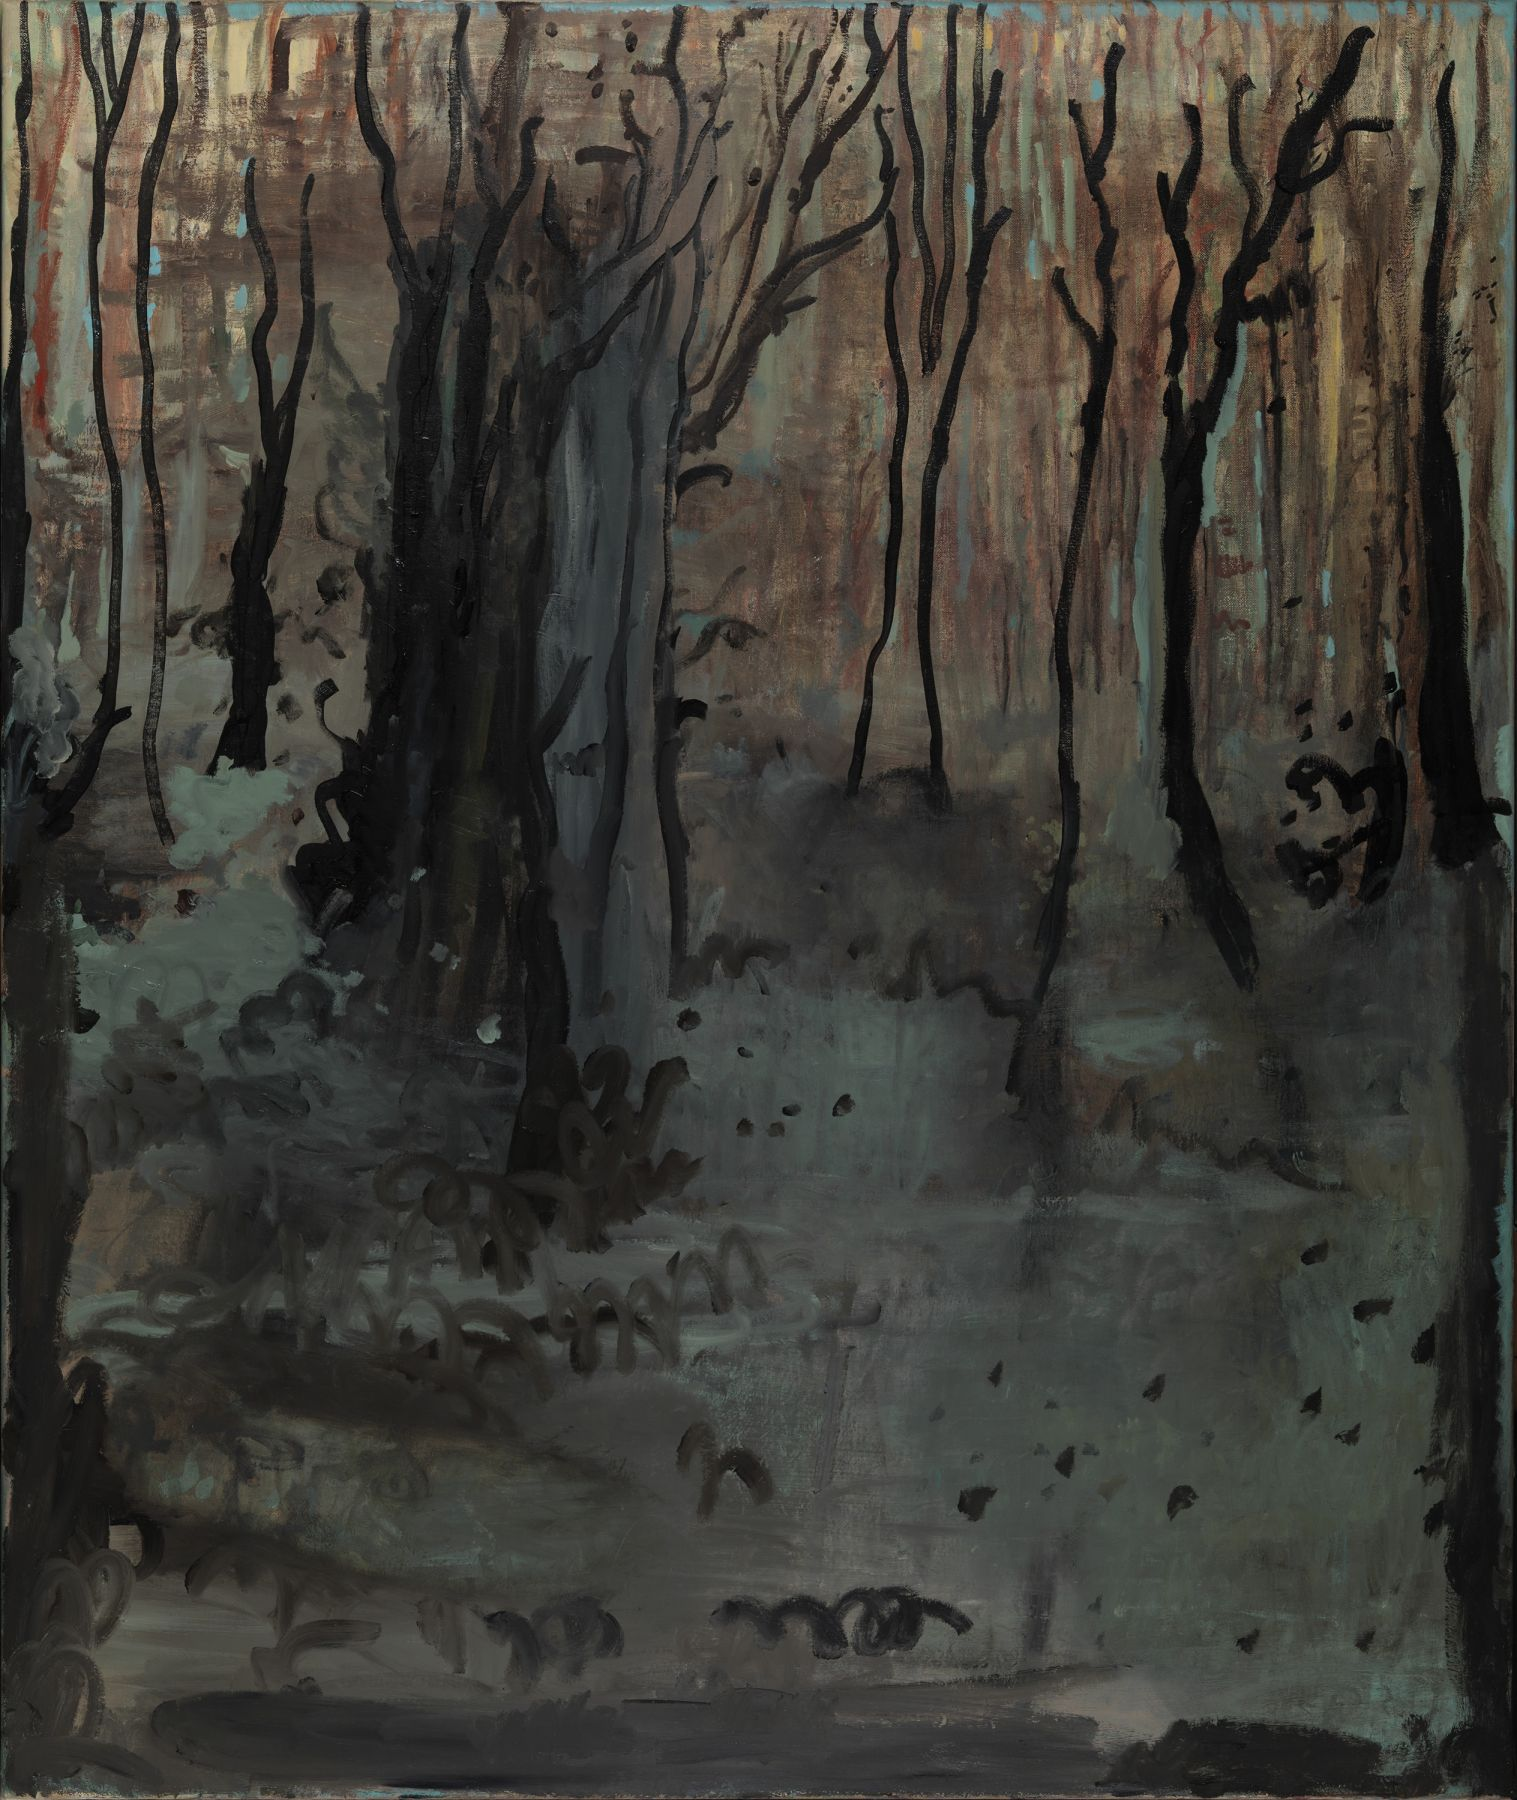 a landscape painting of a forest by Dutch artist Hannah van Bart